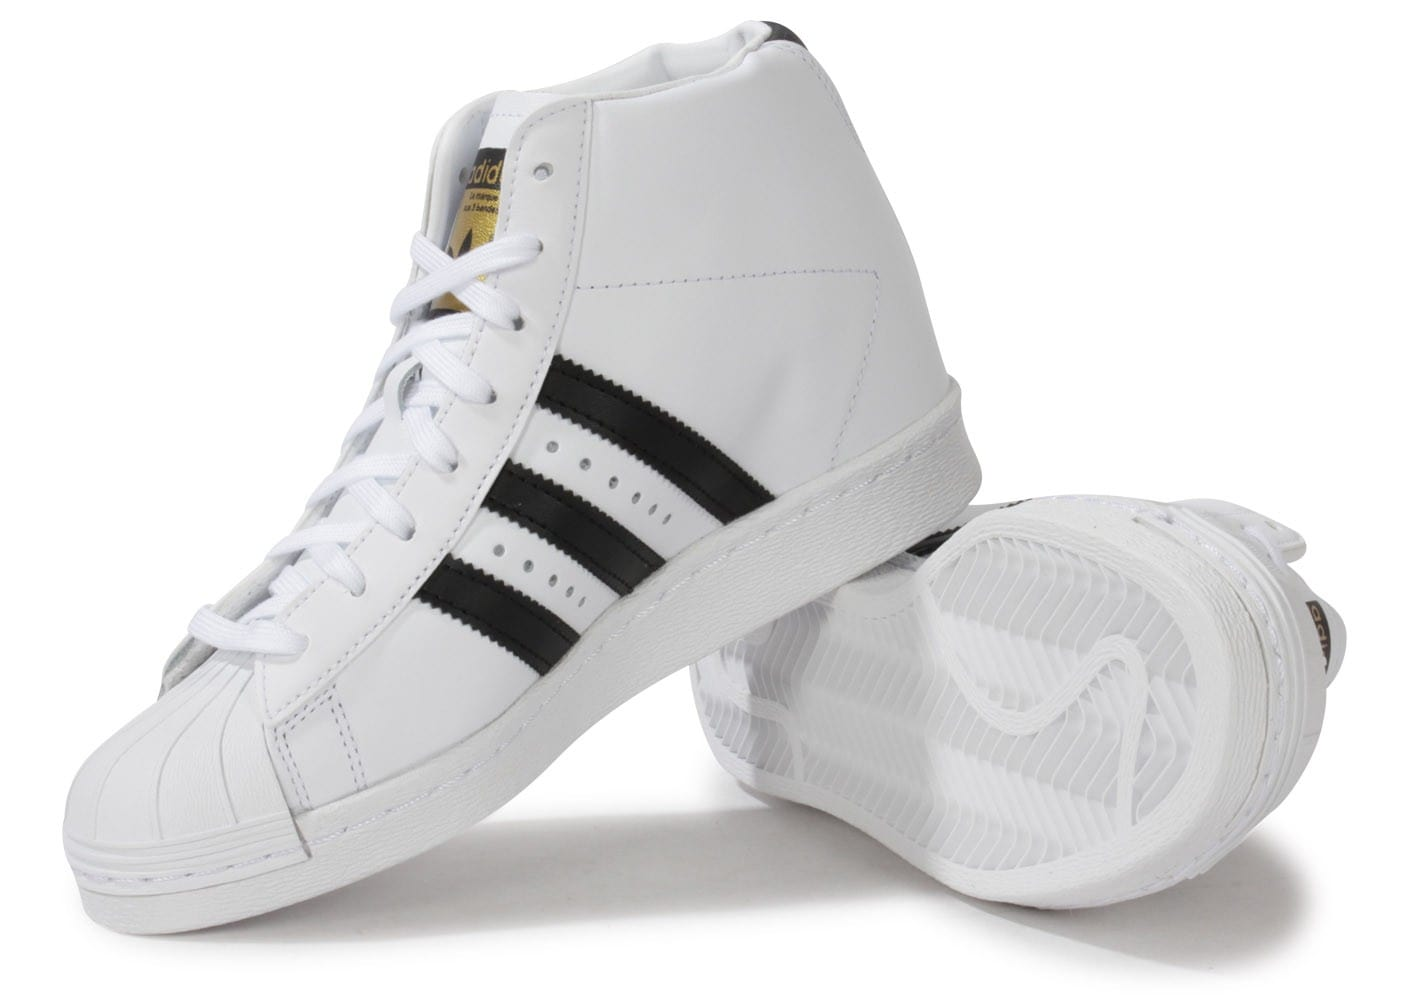 Compensee Blanche Up Chaussures Superstar Chausport Adidas MGUzqVpS